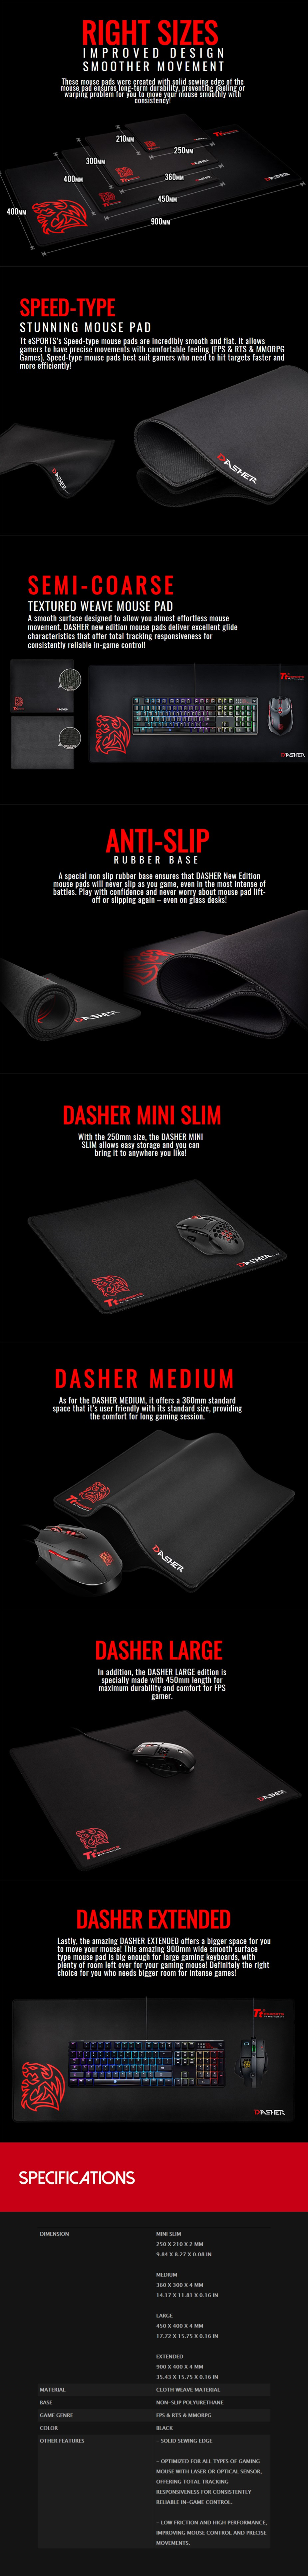 TT eSPORTS Dasher Cloth Gaming Mouse Pad - Medium - Desktop Overview 1